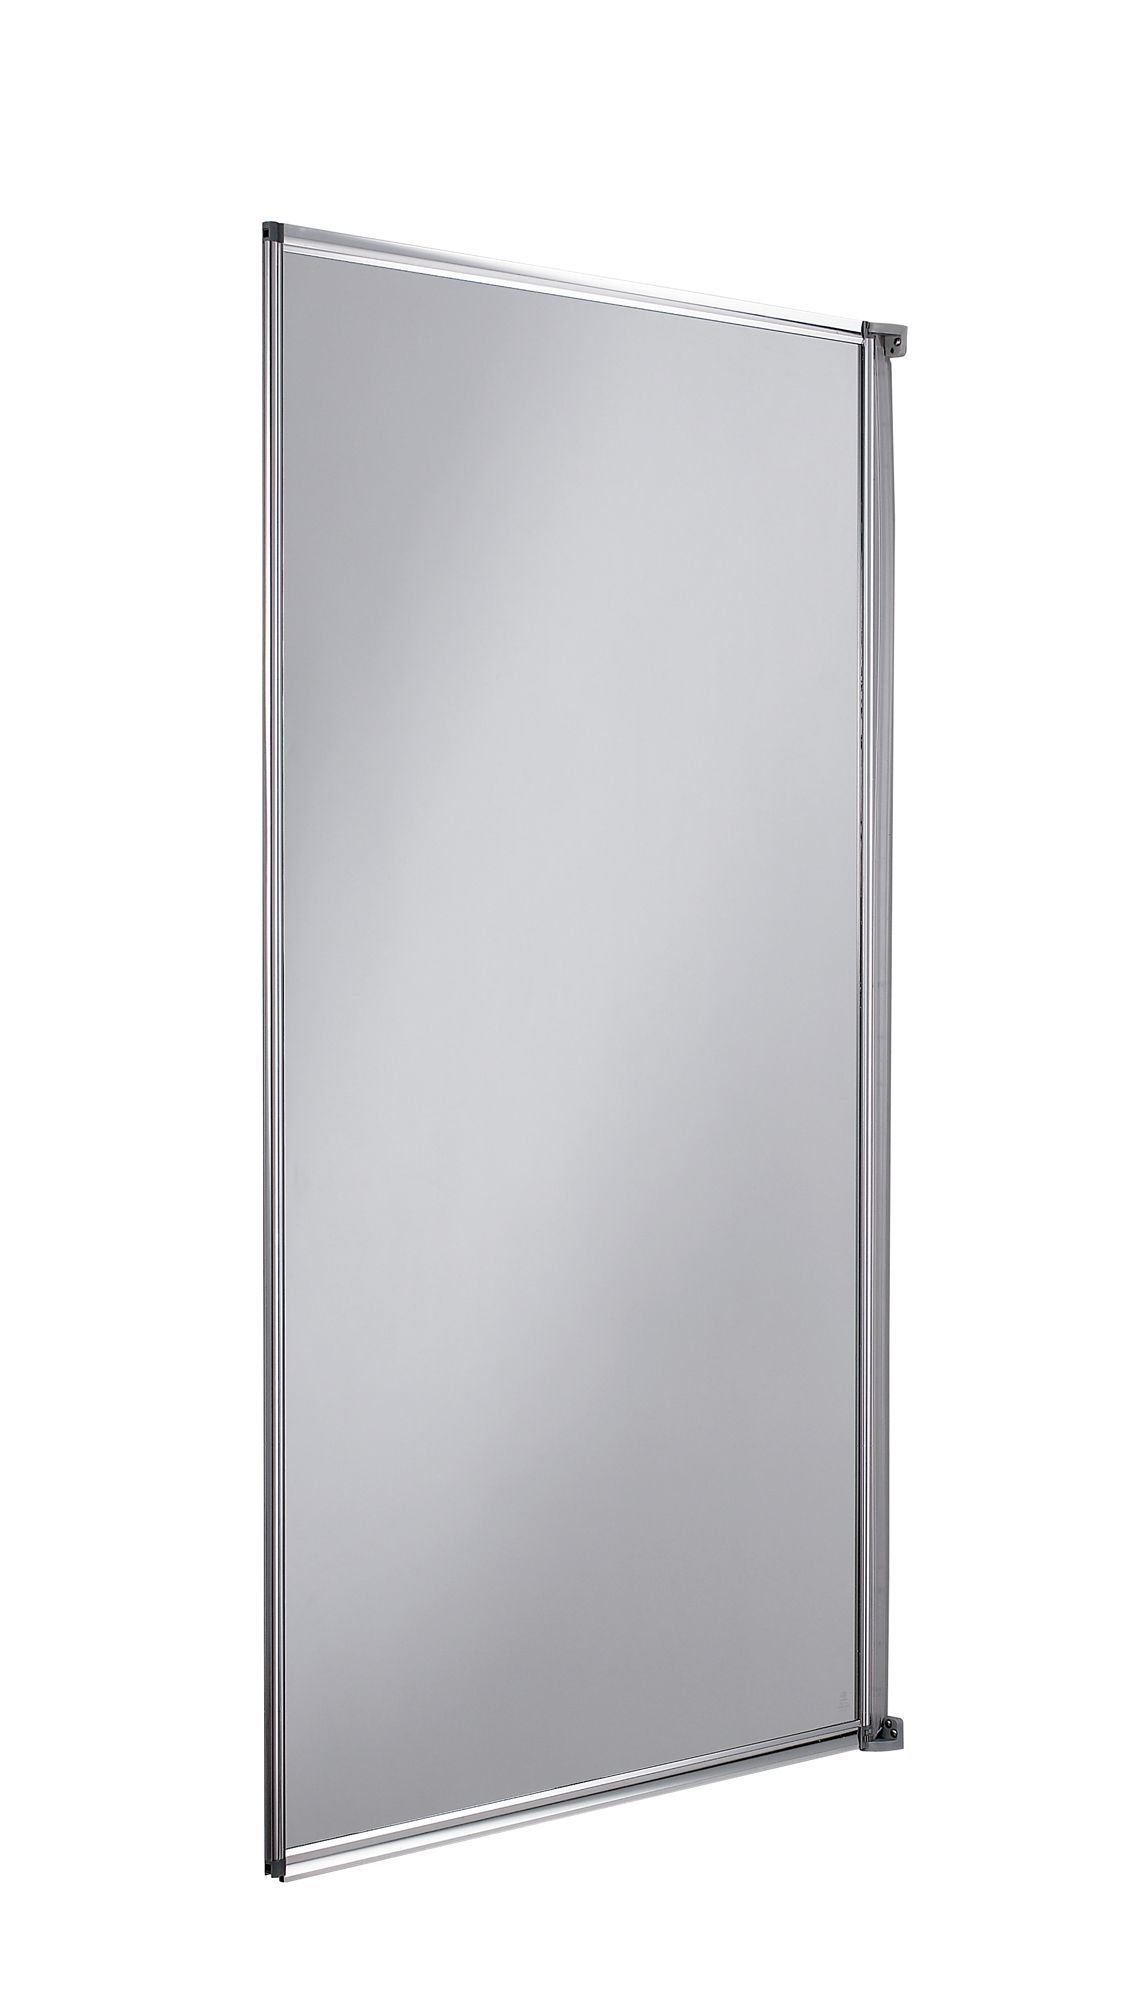 Cooke and lewis bathroom mirrors - Cooke Lewis Straight Single Panel Fully Framed Bath Screen W 750mm Departments Diy At B Q